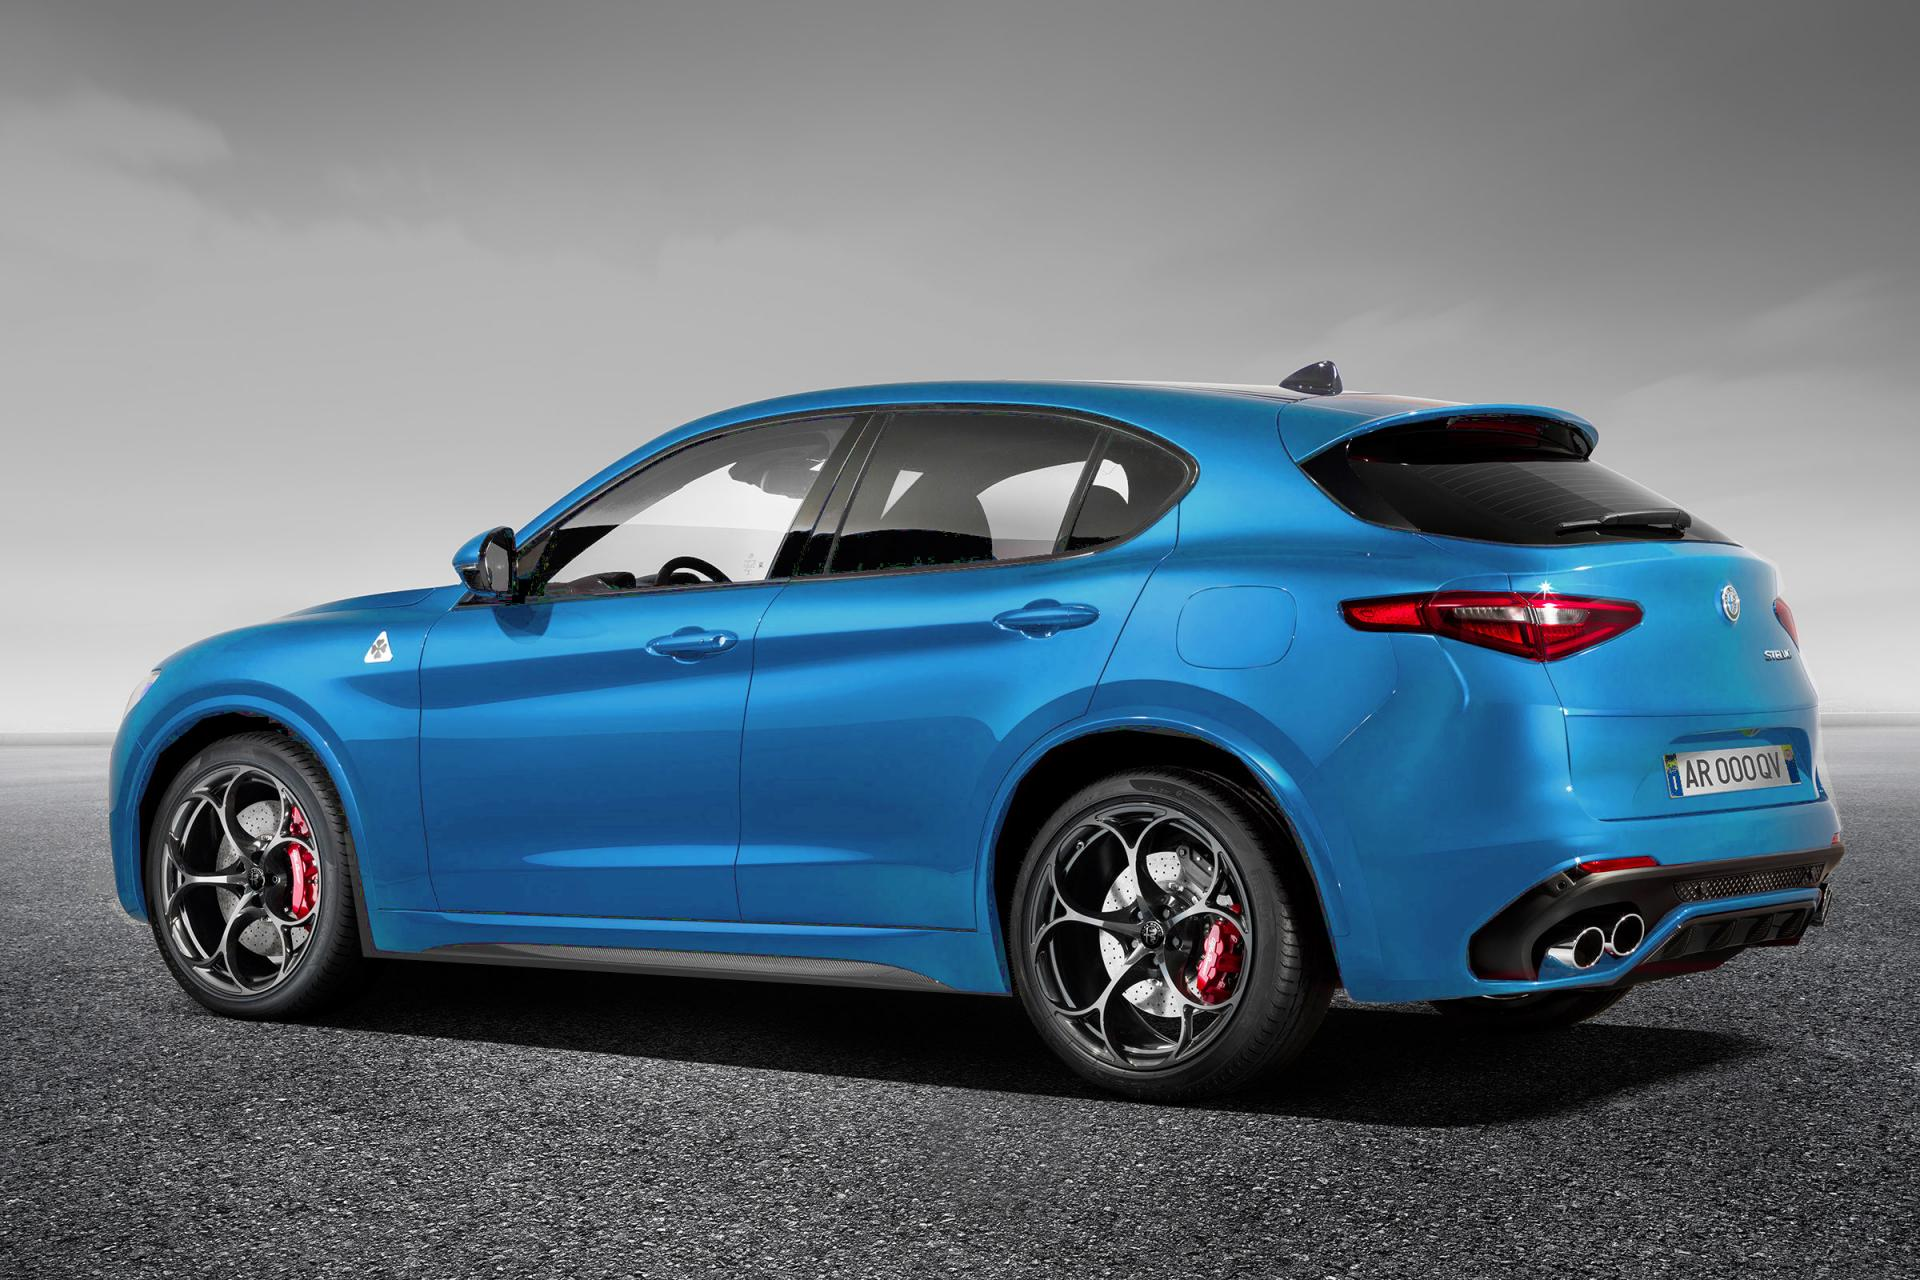 alfa romeo quadrifoglio with  on 126559 in addition 1029247 vettel And Rikknen Help Launch Ferraris 2015 Formula One Car Video as well Photos Alfa Romeo 147 image 8 further  besides Alfa Romeo Stelvio 2 0 Tb 280cv Q4 At8 Nero Vulcano Rm.